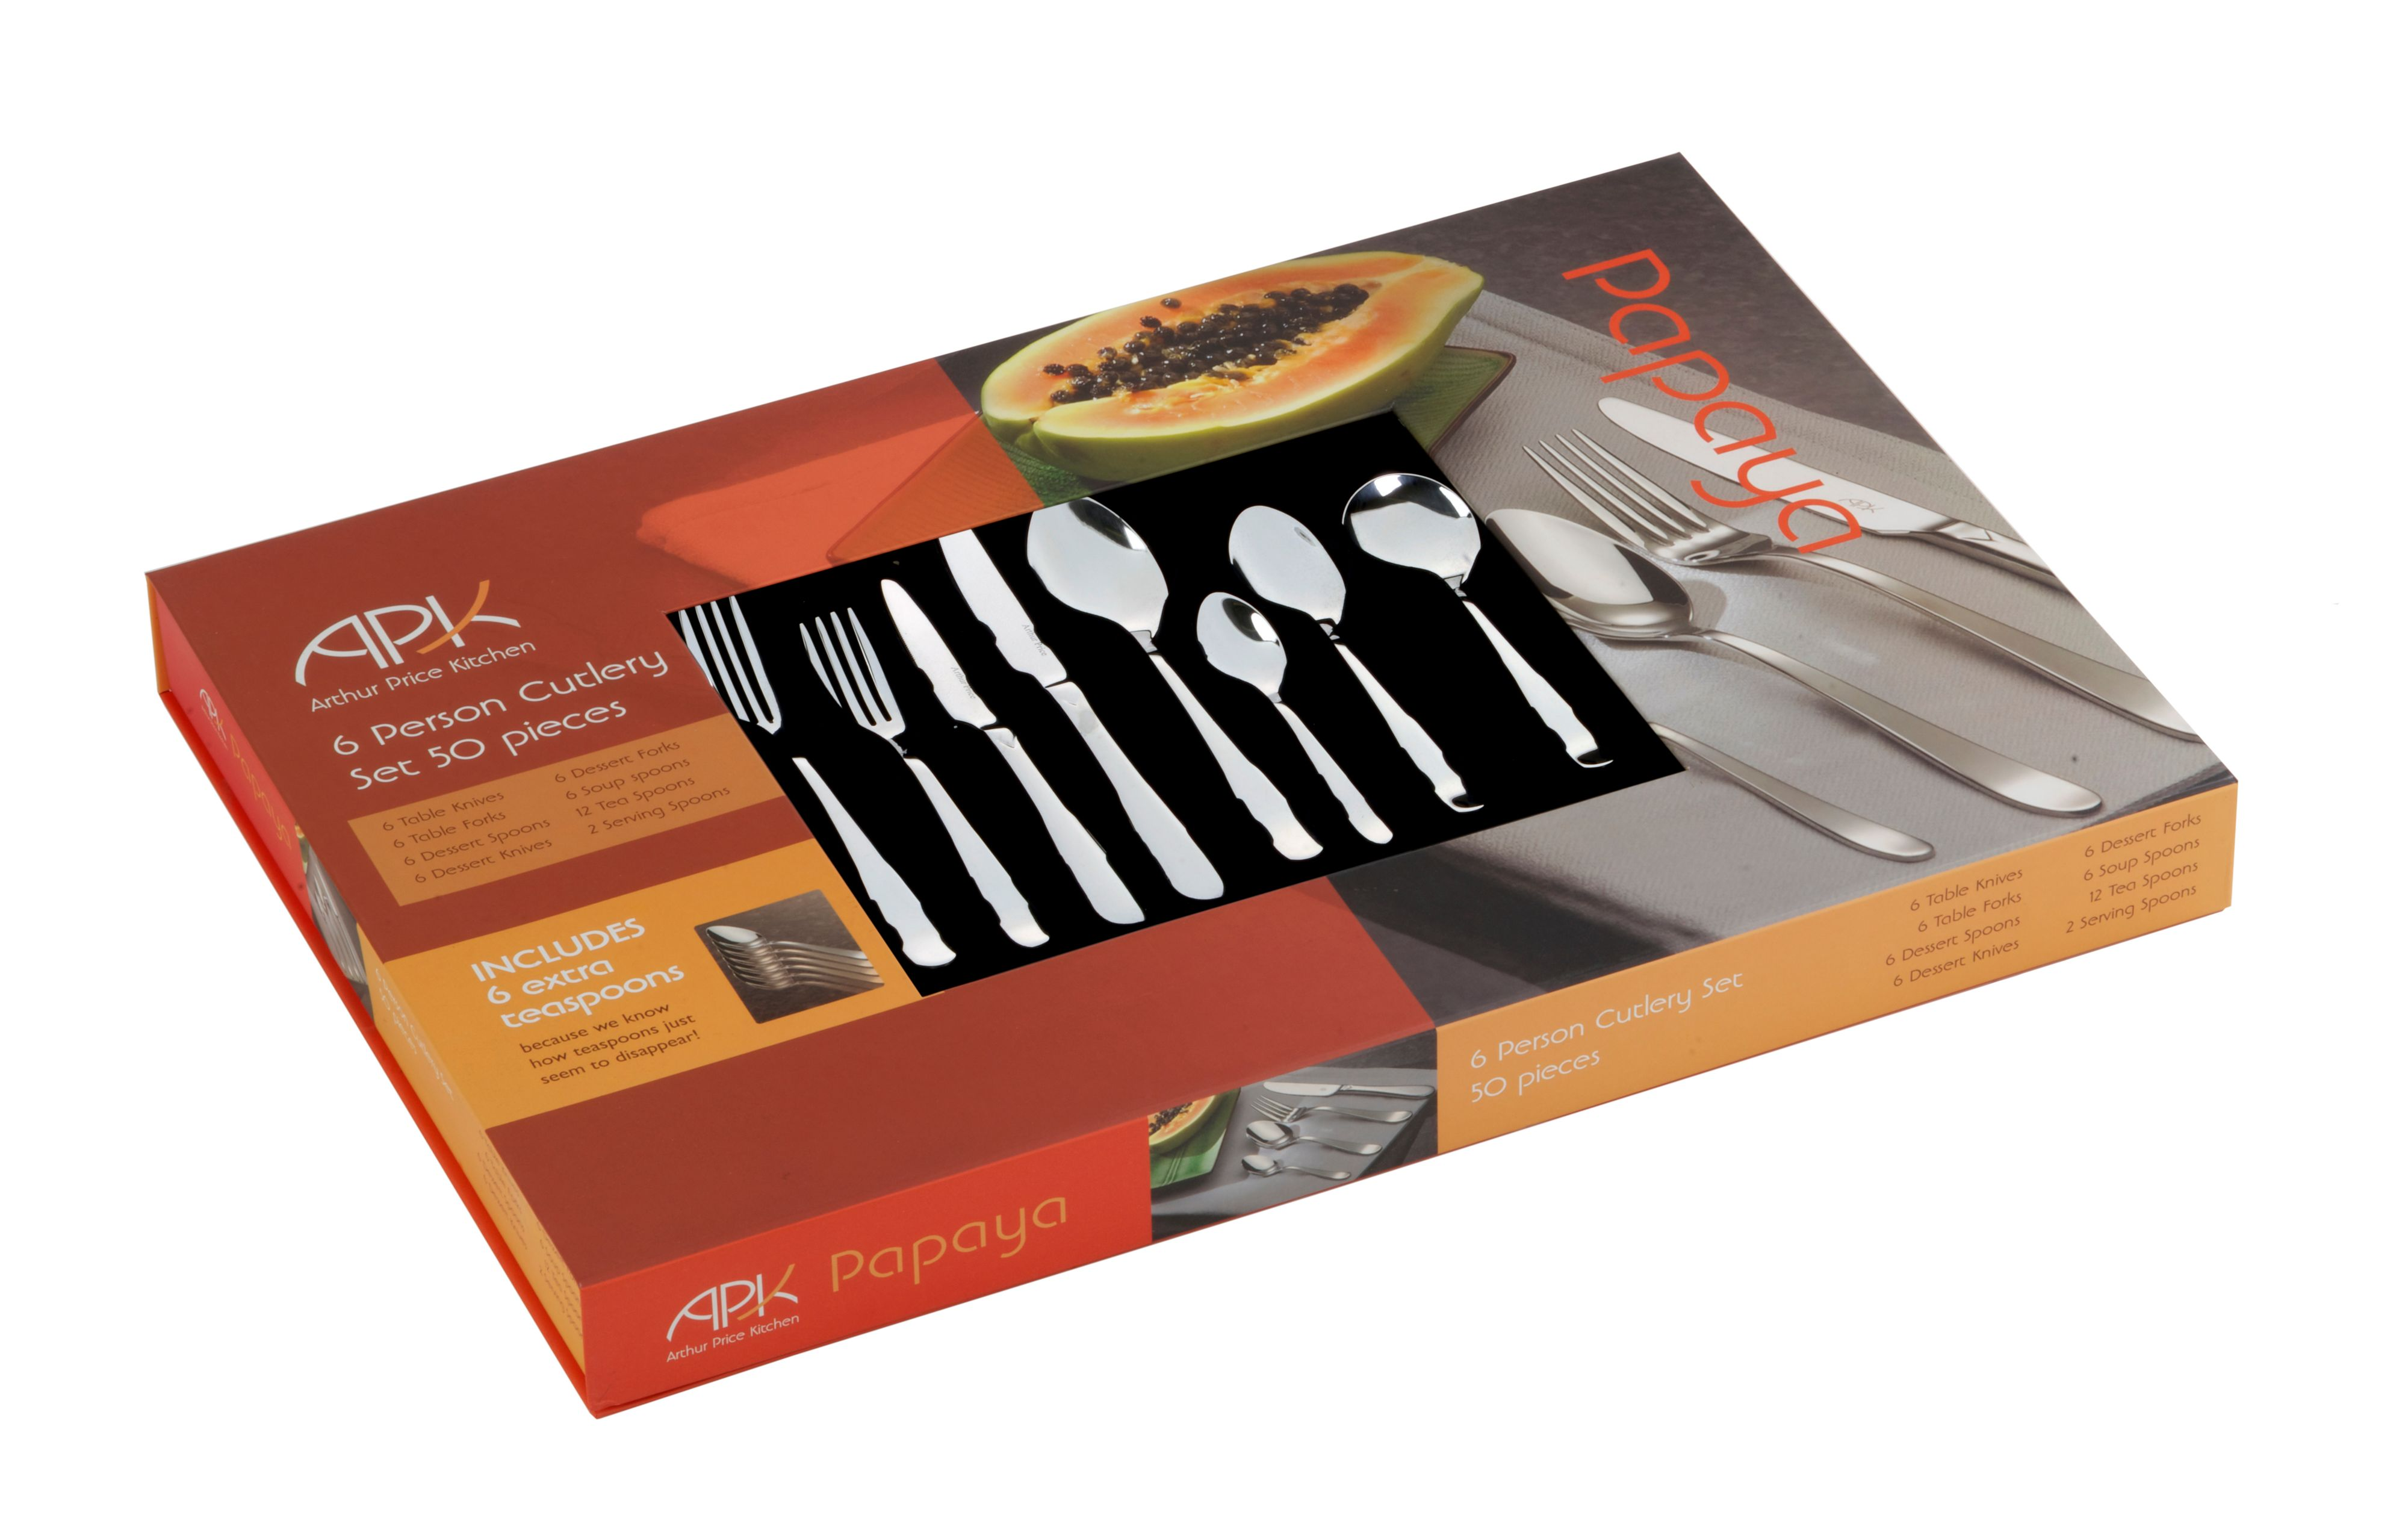 Papaya 50 piece 6 person boxed set